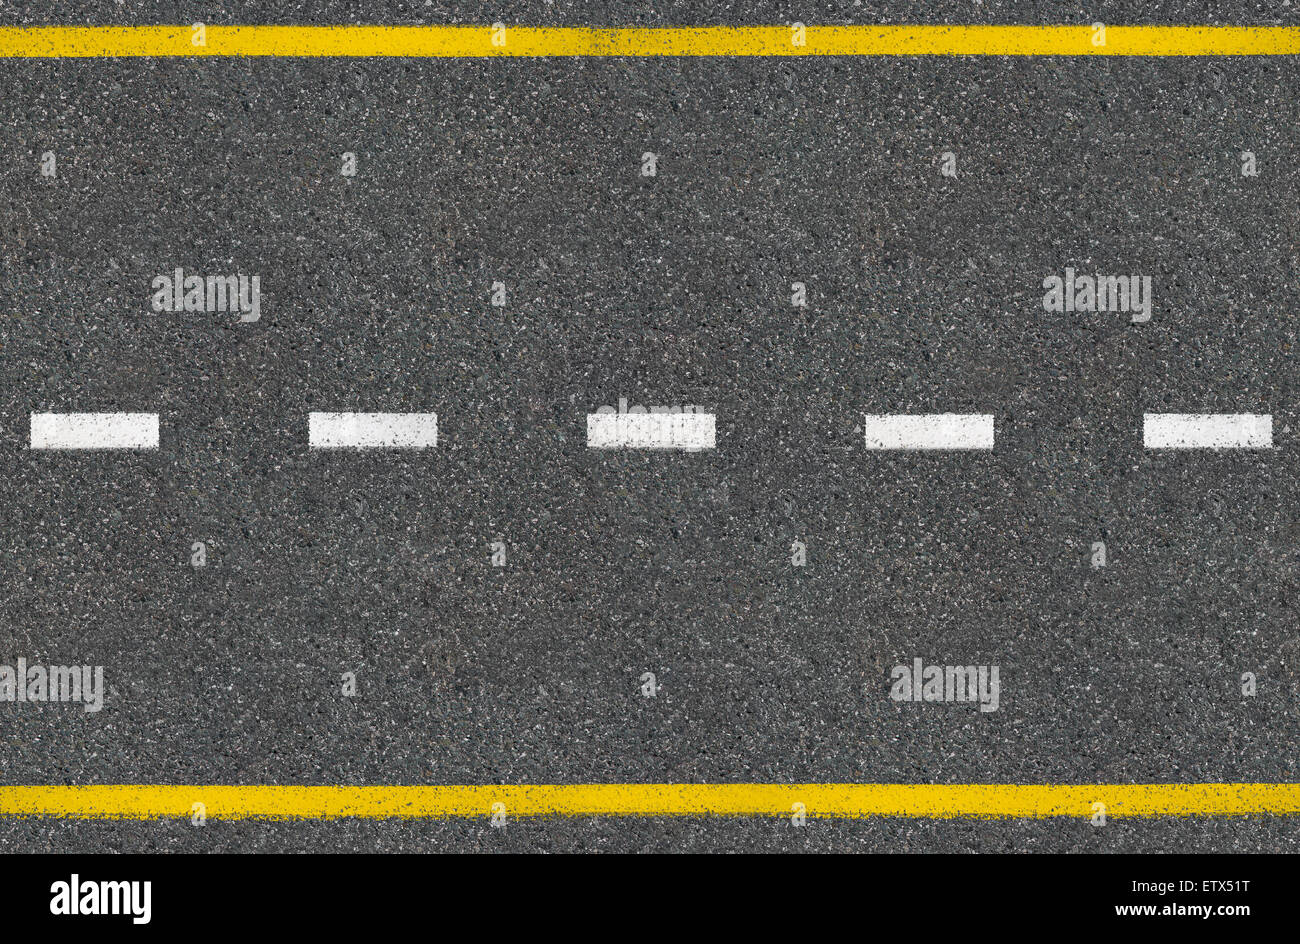 Asphalt road top view Stock Photo: 84167940 - Alamy